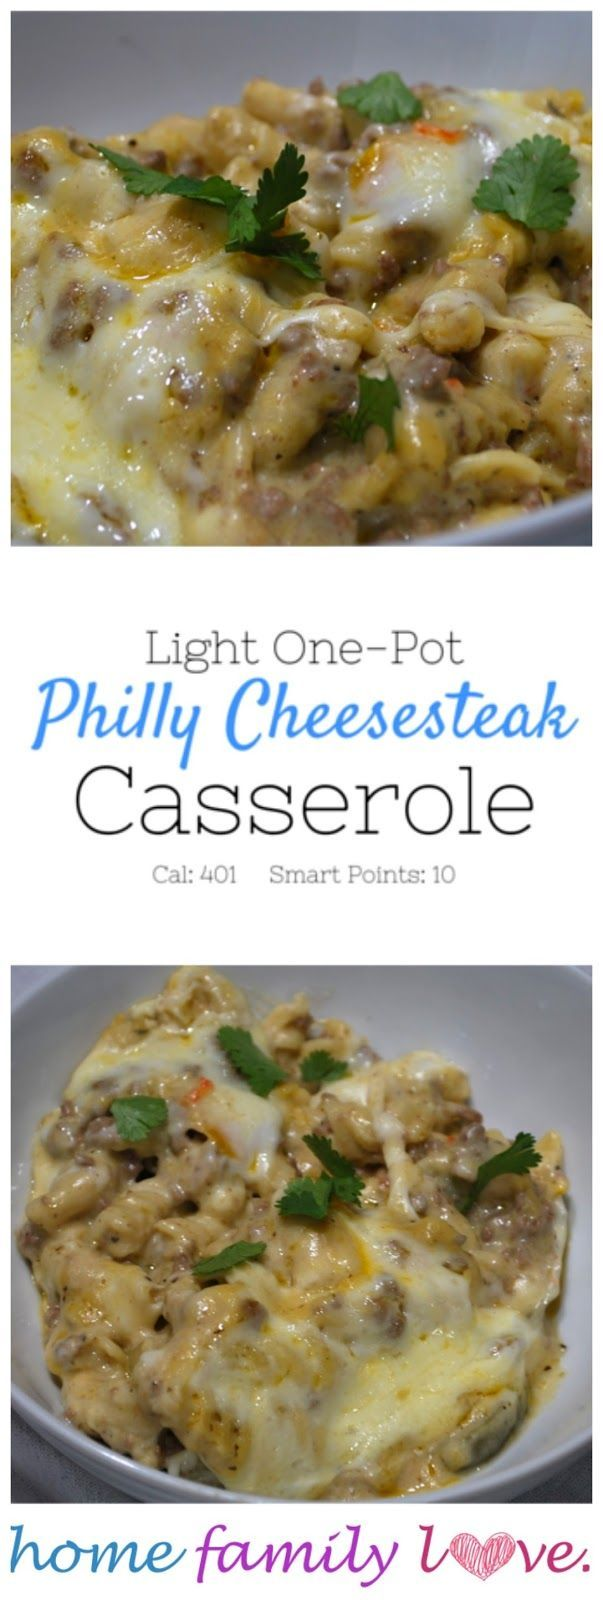 Light Philly Cheesesteak Casserole is only 10 Weight Watcher's Smart Points! It's a perfect quick, easy and healthy weekday meal!